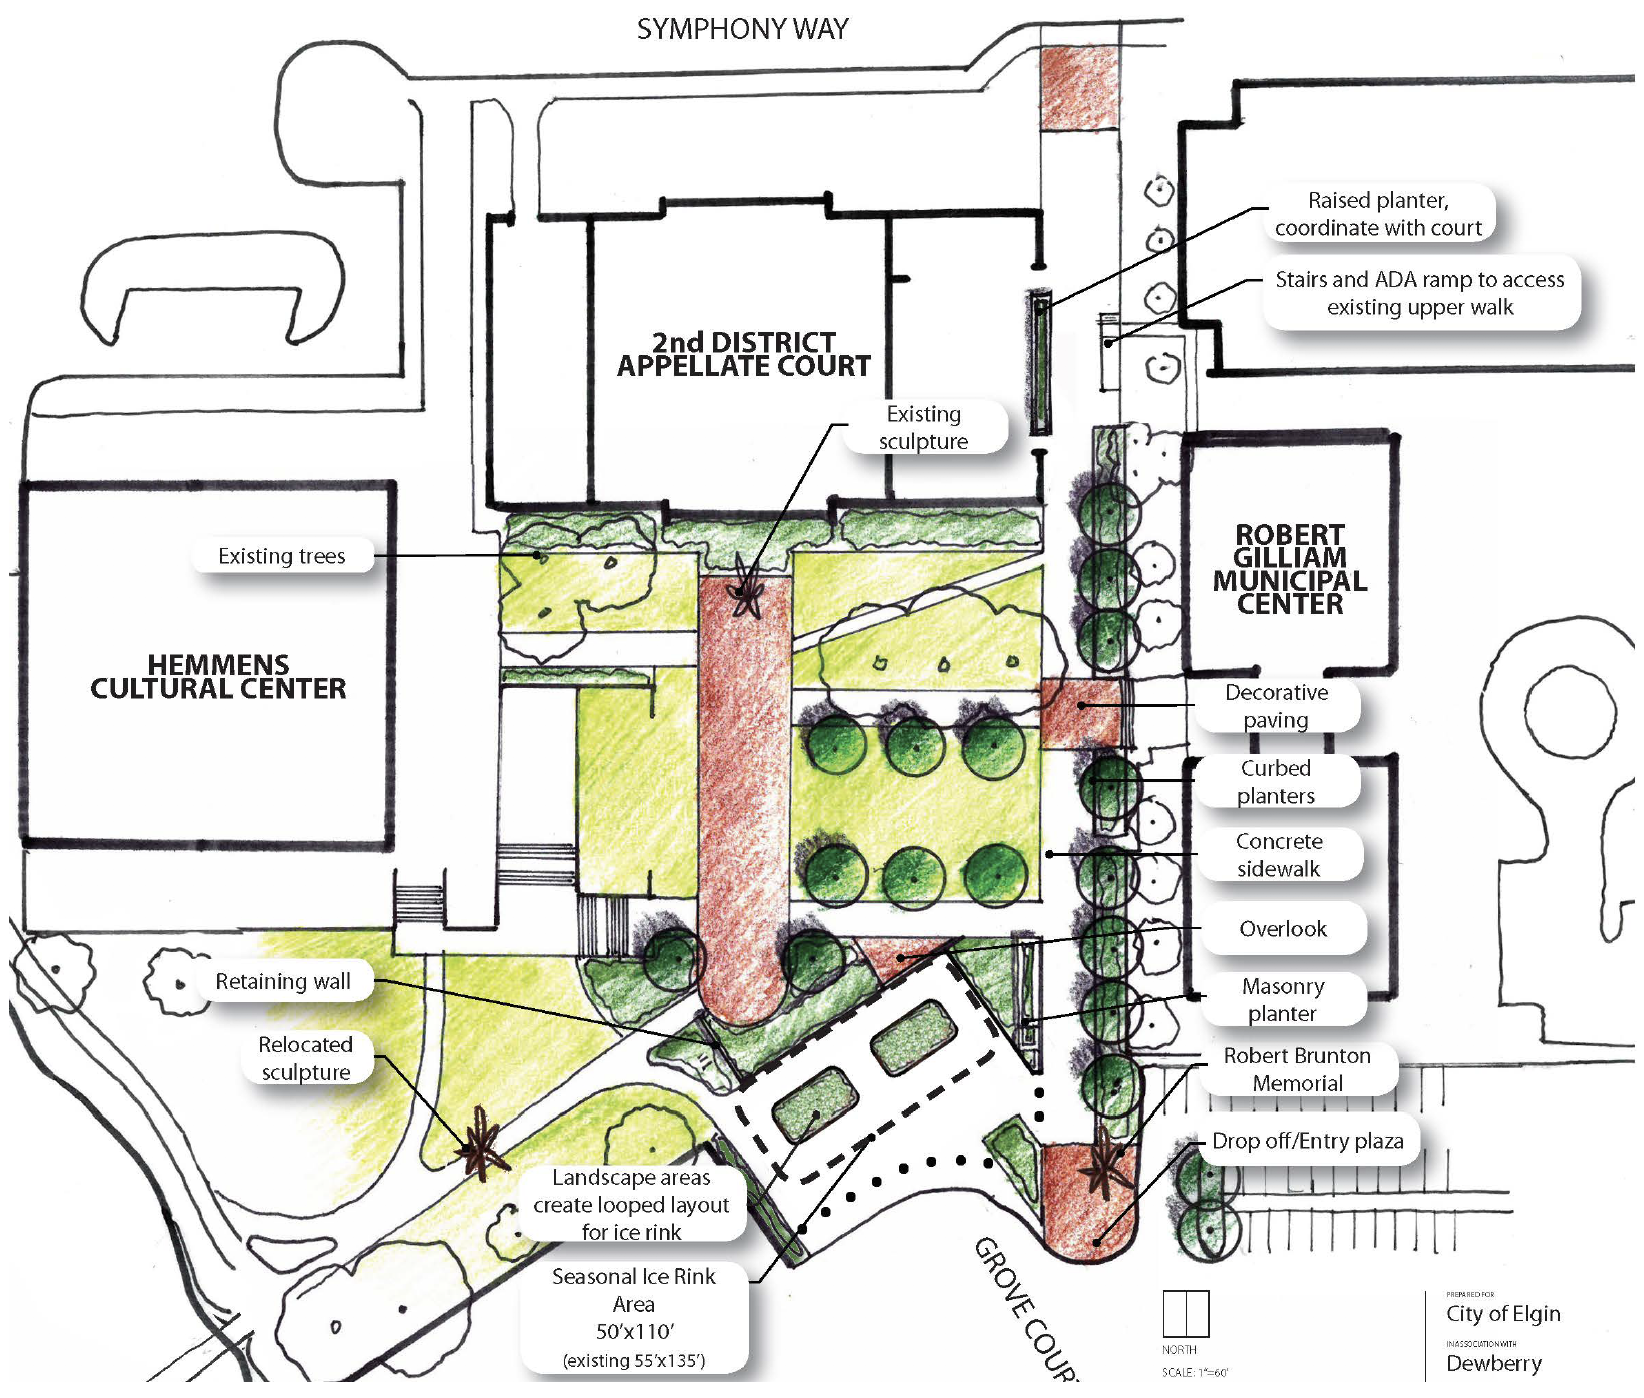 civic center plaza concept for reconstruction